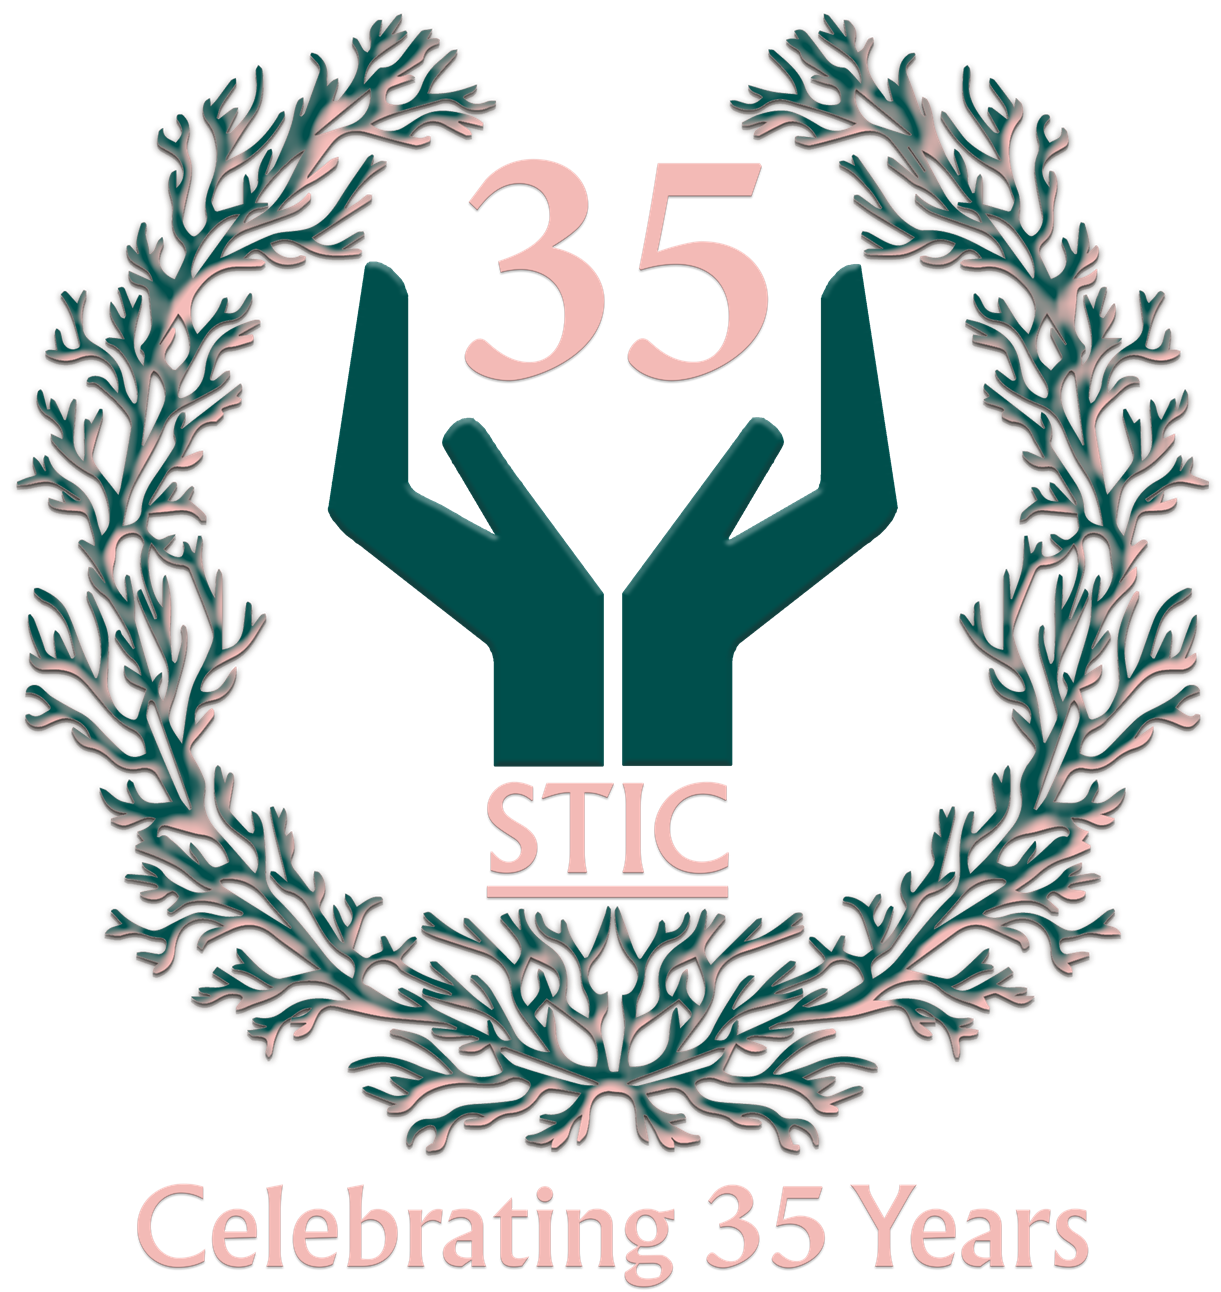 35 year logo, with coral reef laurel and stic logo hands holding the number 35